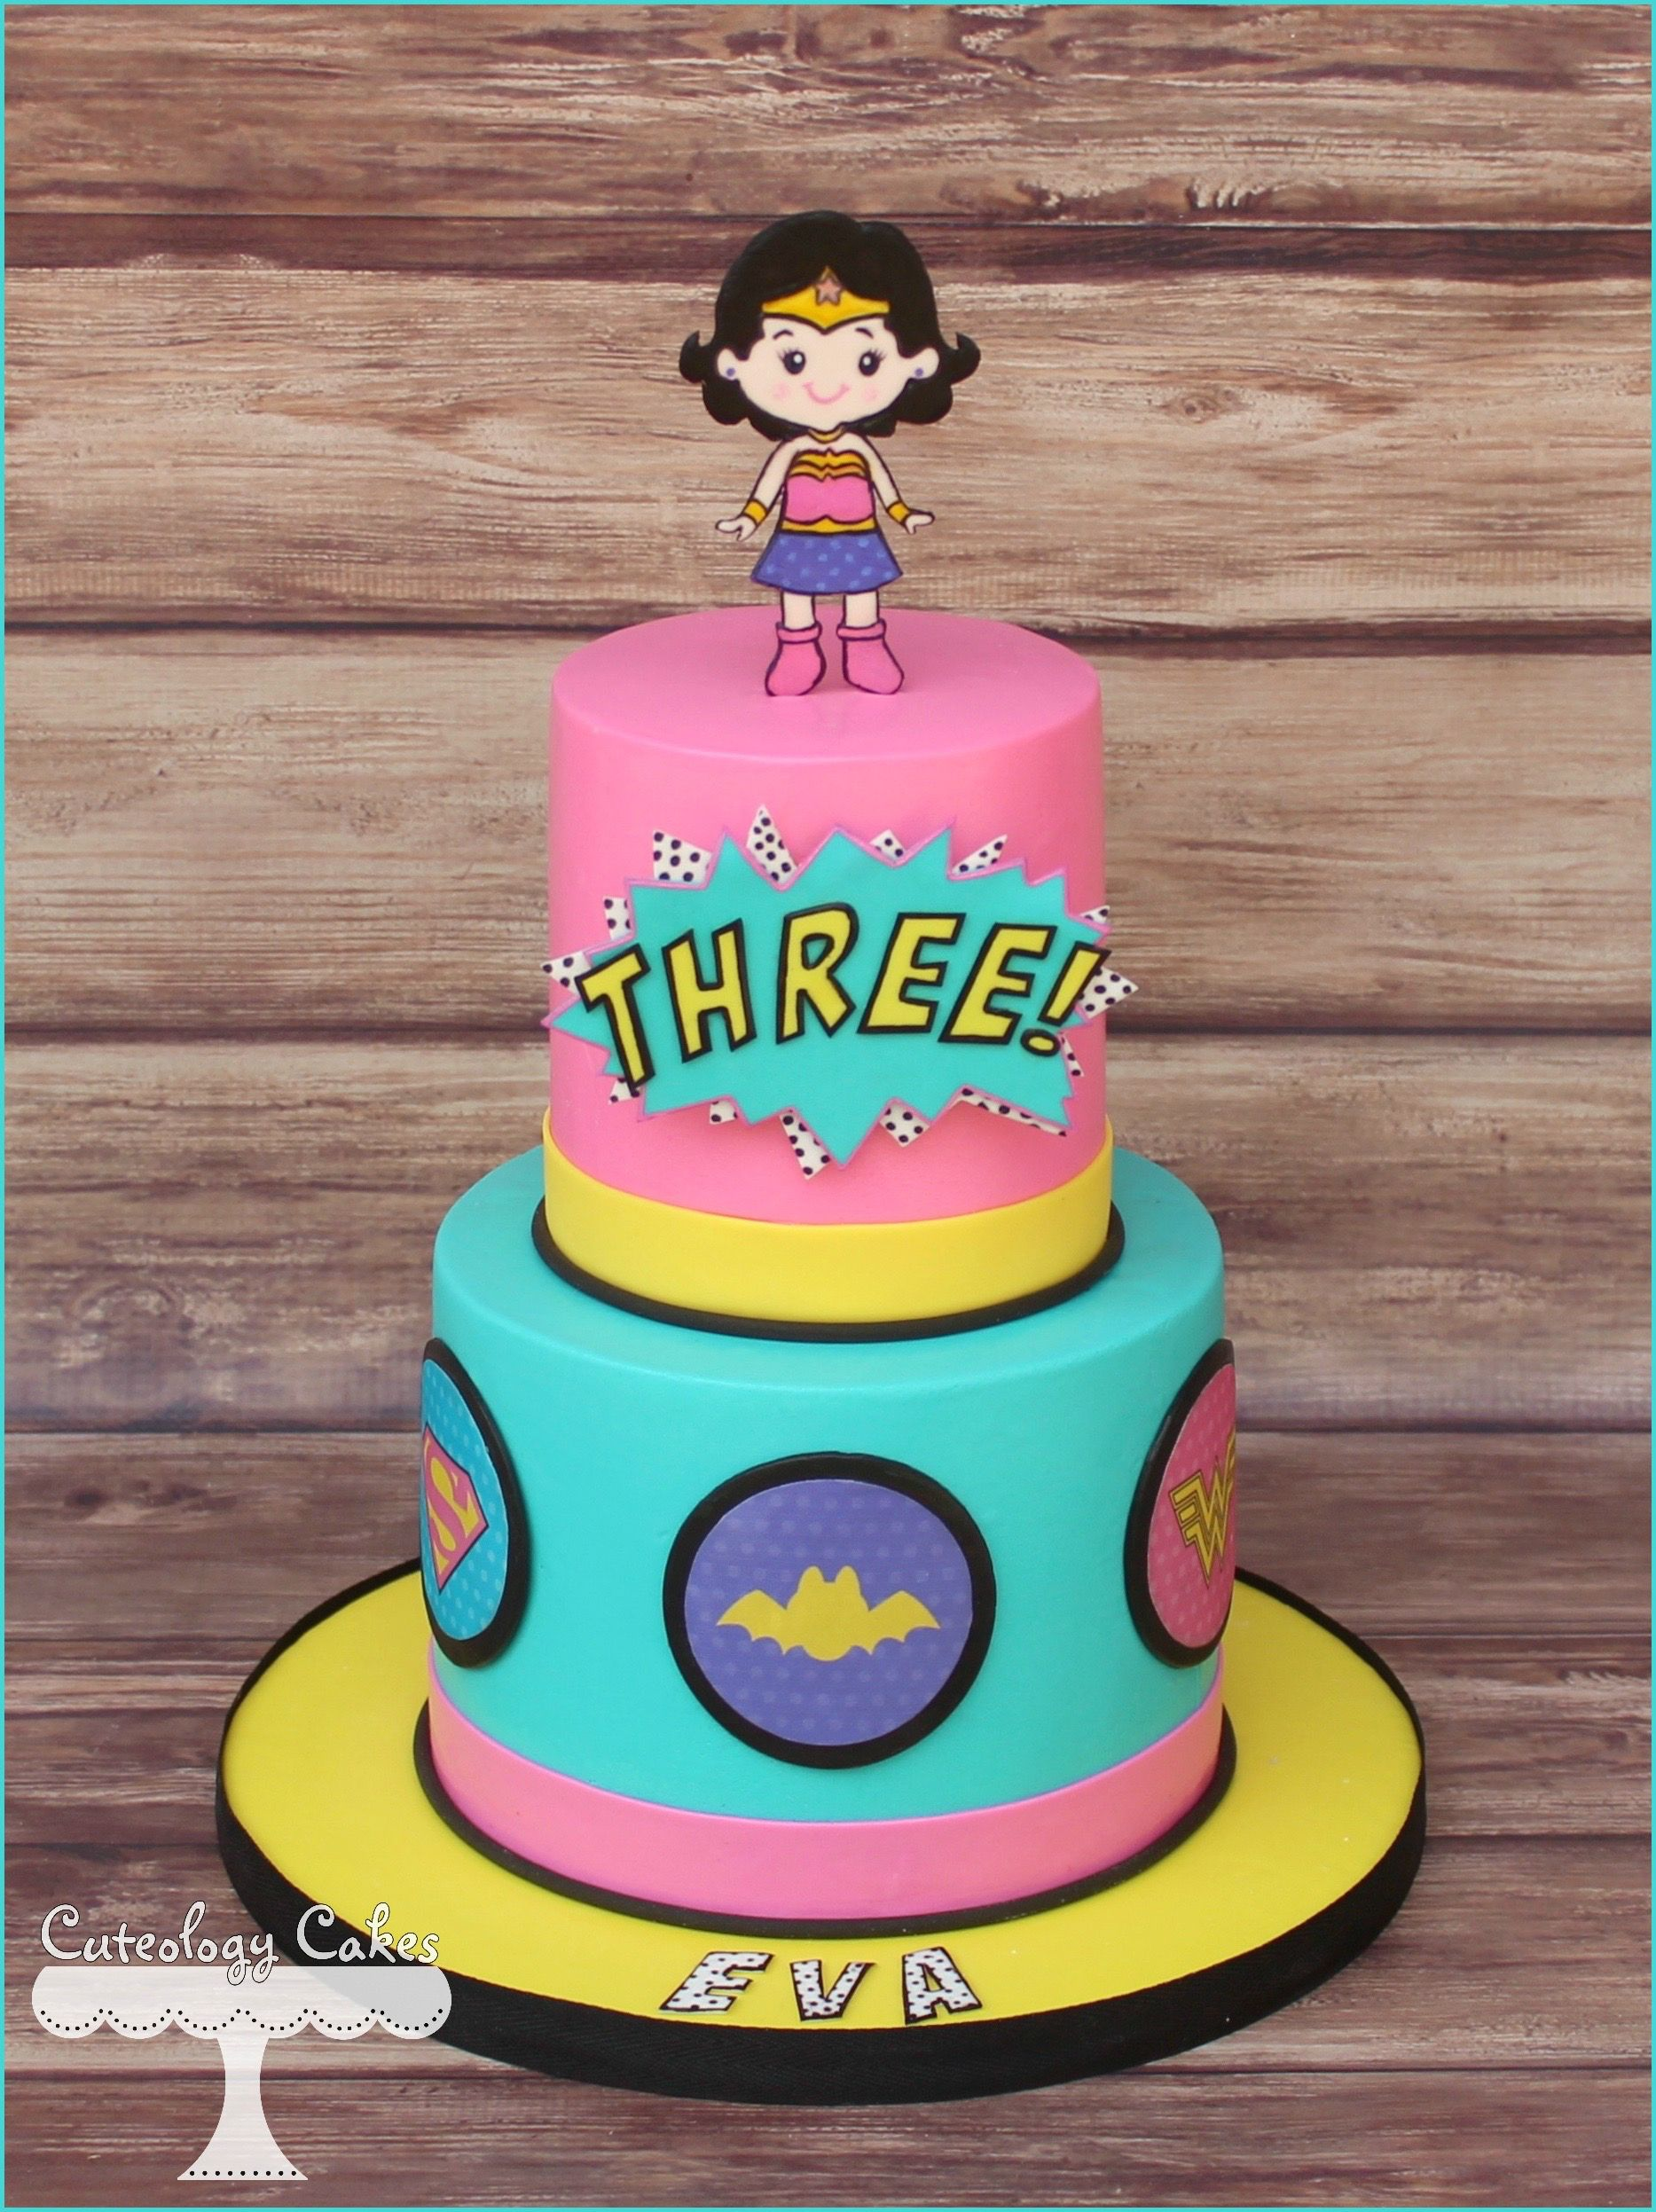 Girly Superhero Cake wwwfacebookcomilovecuteologycakes Super